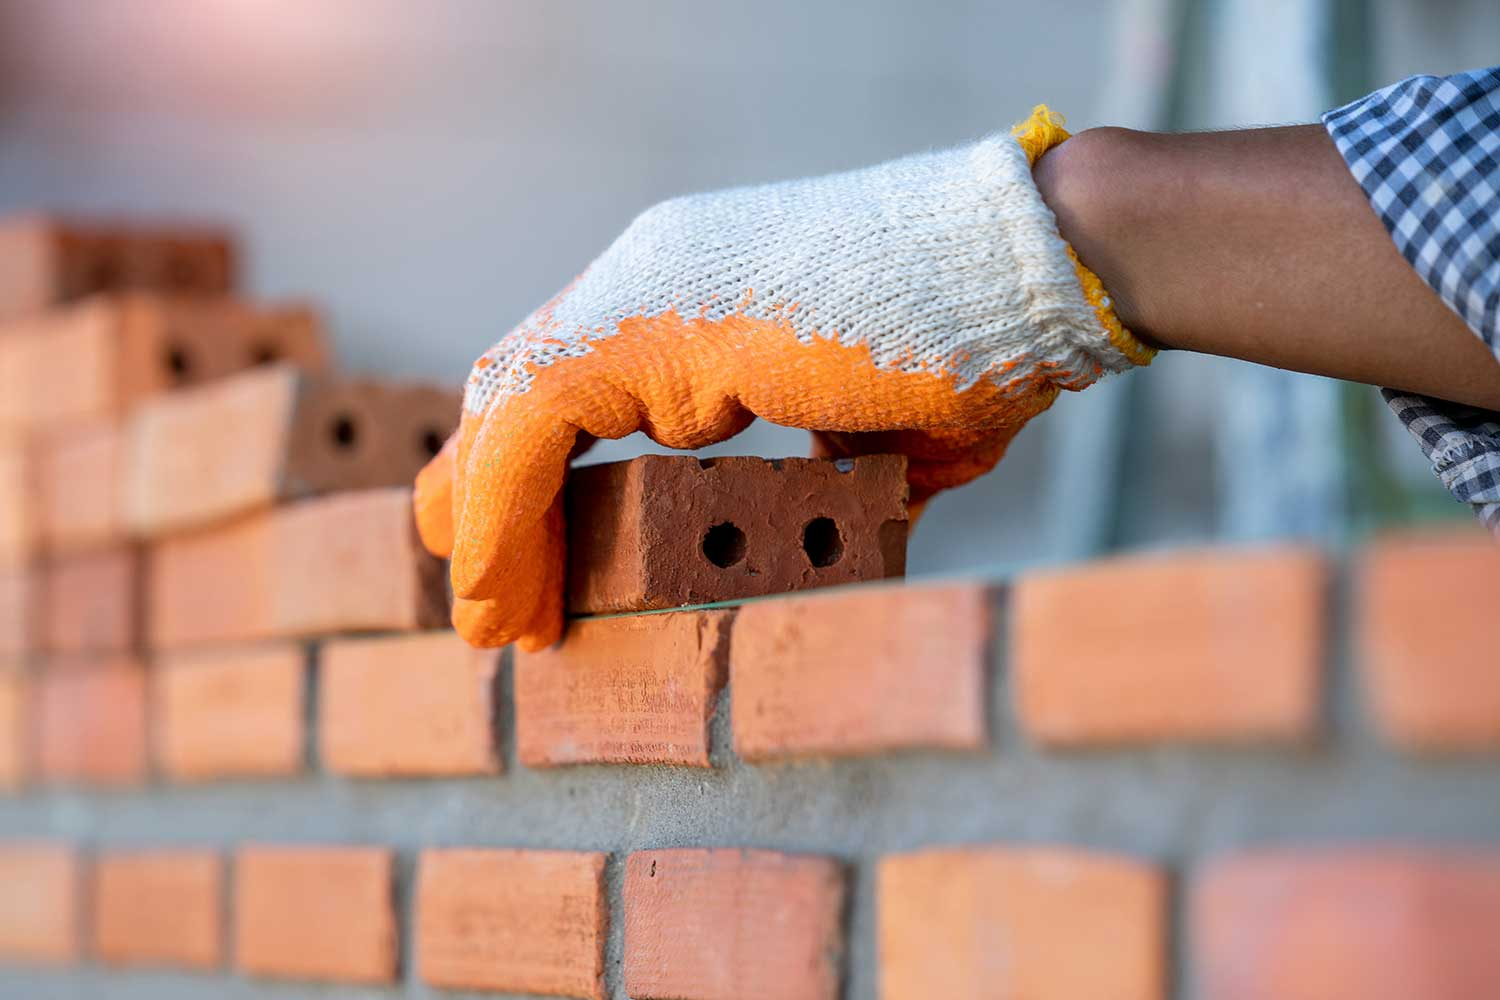 Growth Strategy For A Company Of Building Materials - Asia Market Growth